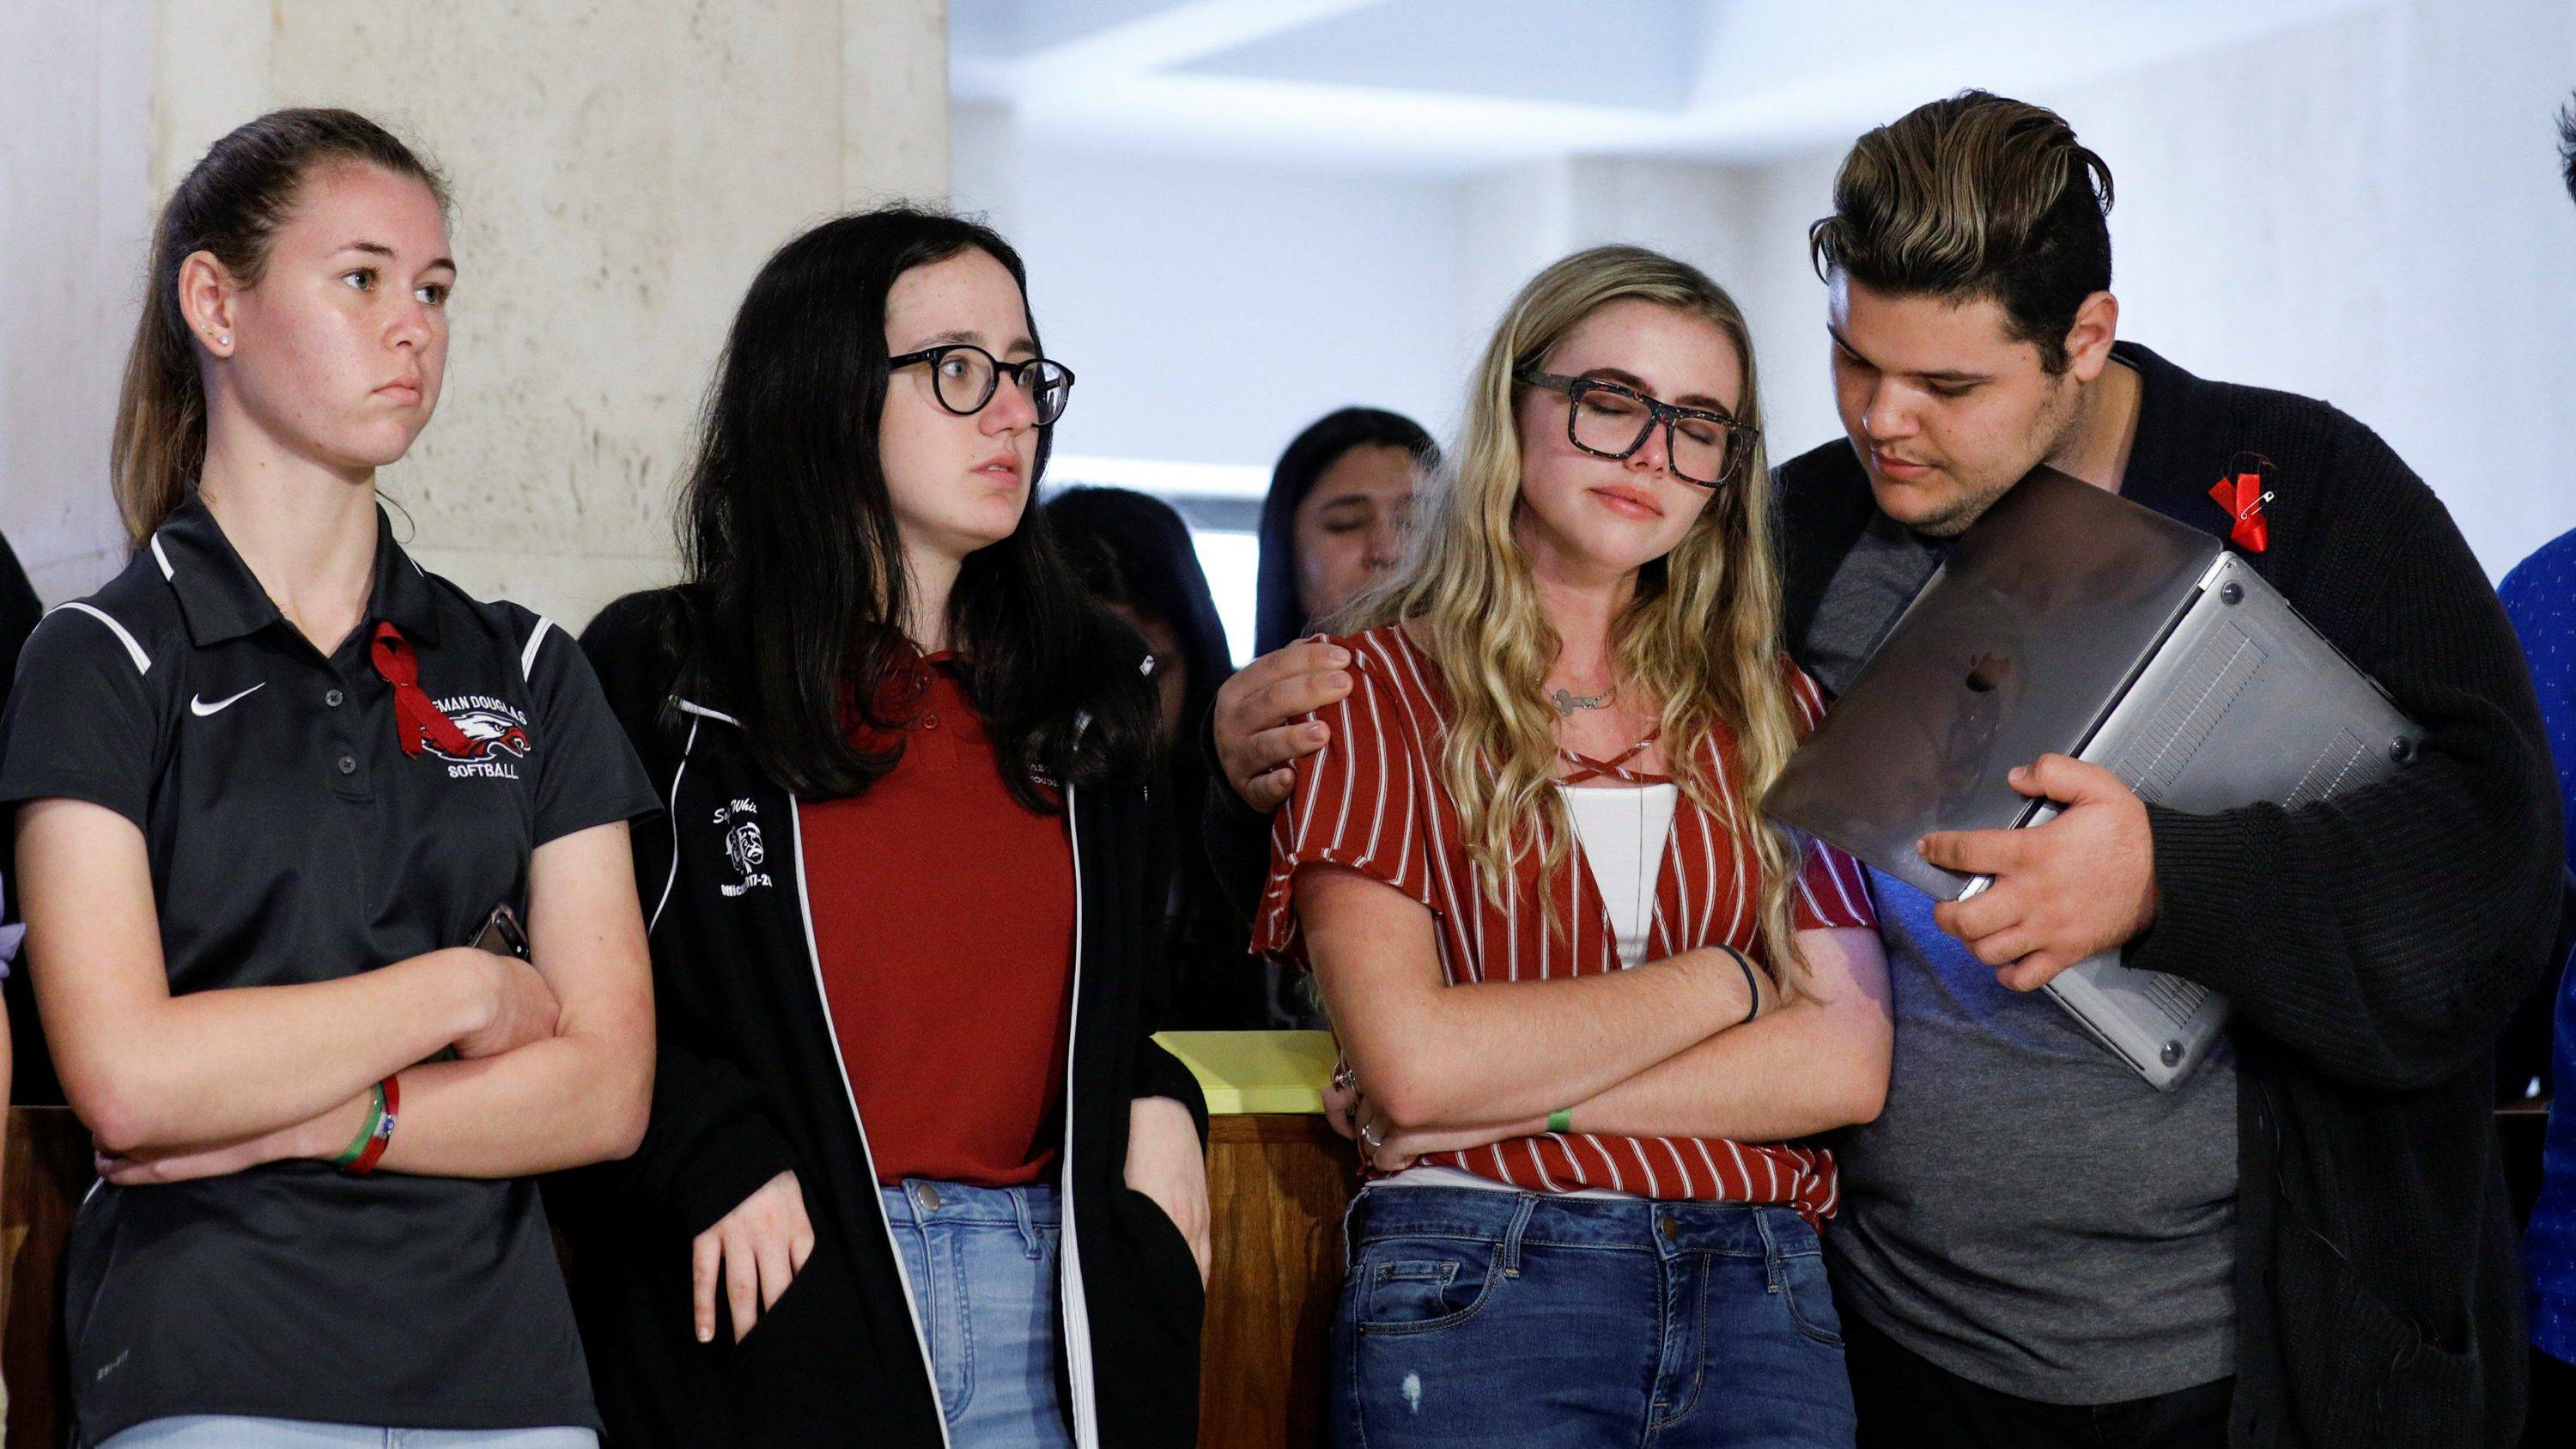 Delaney Tarr (3rd left) is consoled by fellow Marjory Stoneman Douglas High School student Dimitri Hoth (R) while Sarah Chadwick (L) and Sophie Whitney join them to listen to other survivors of last week's mass shooting on their campus during a news conference, in Tallahassee, Florida, U.S., February 21, 2018.